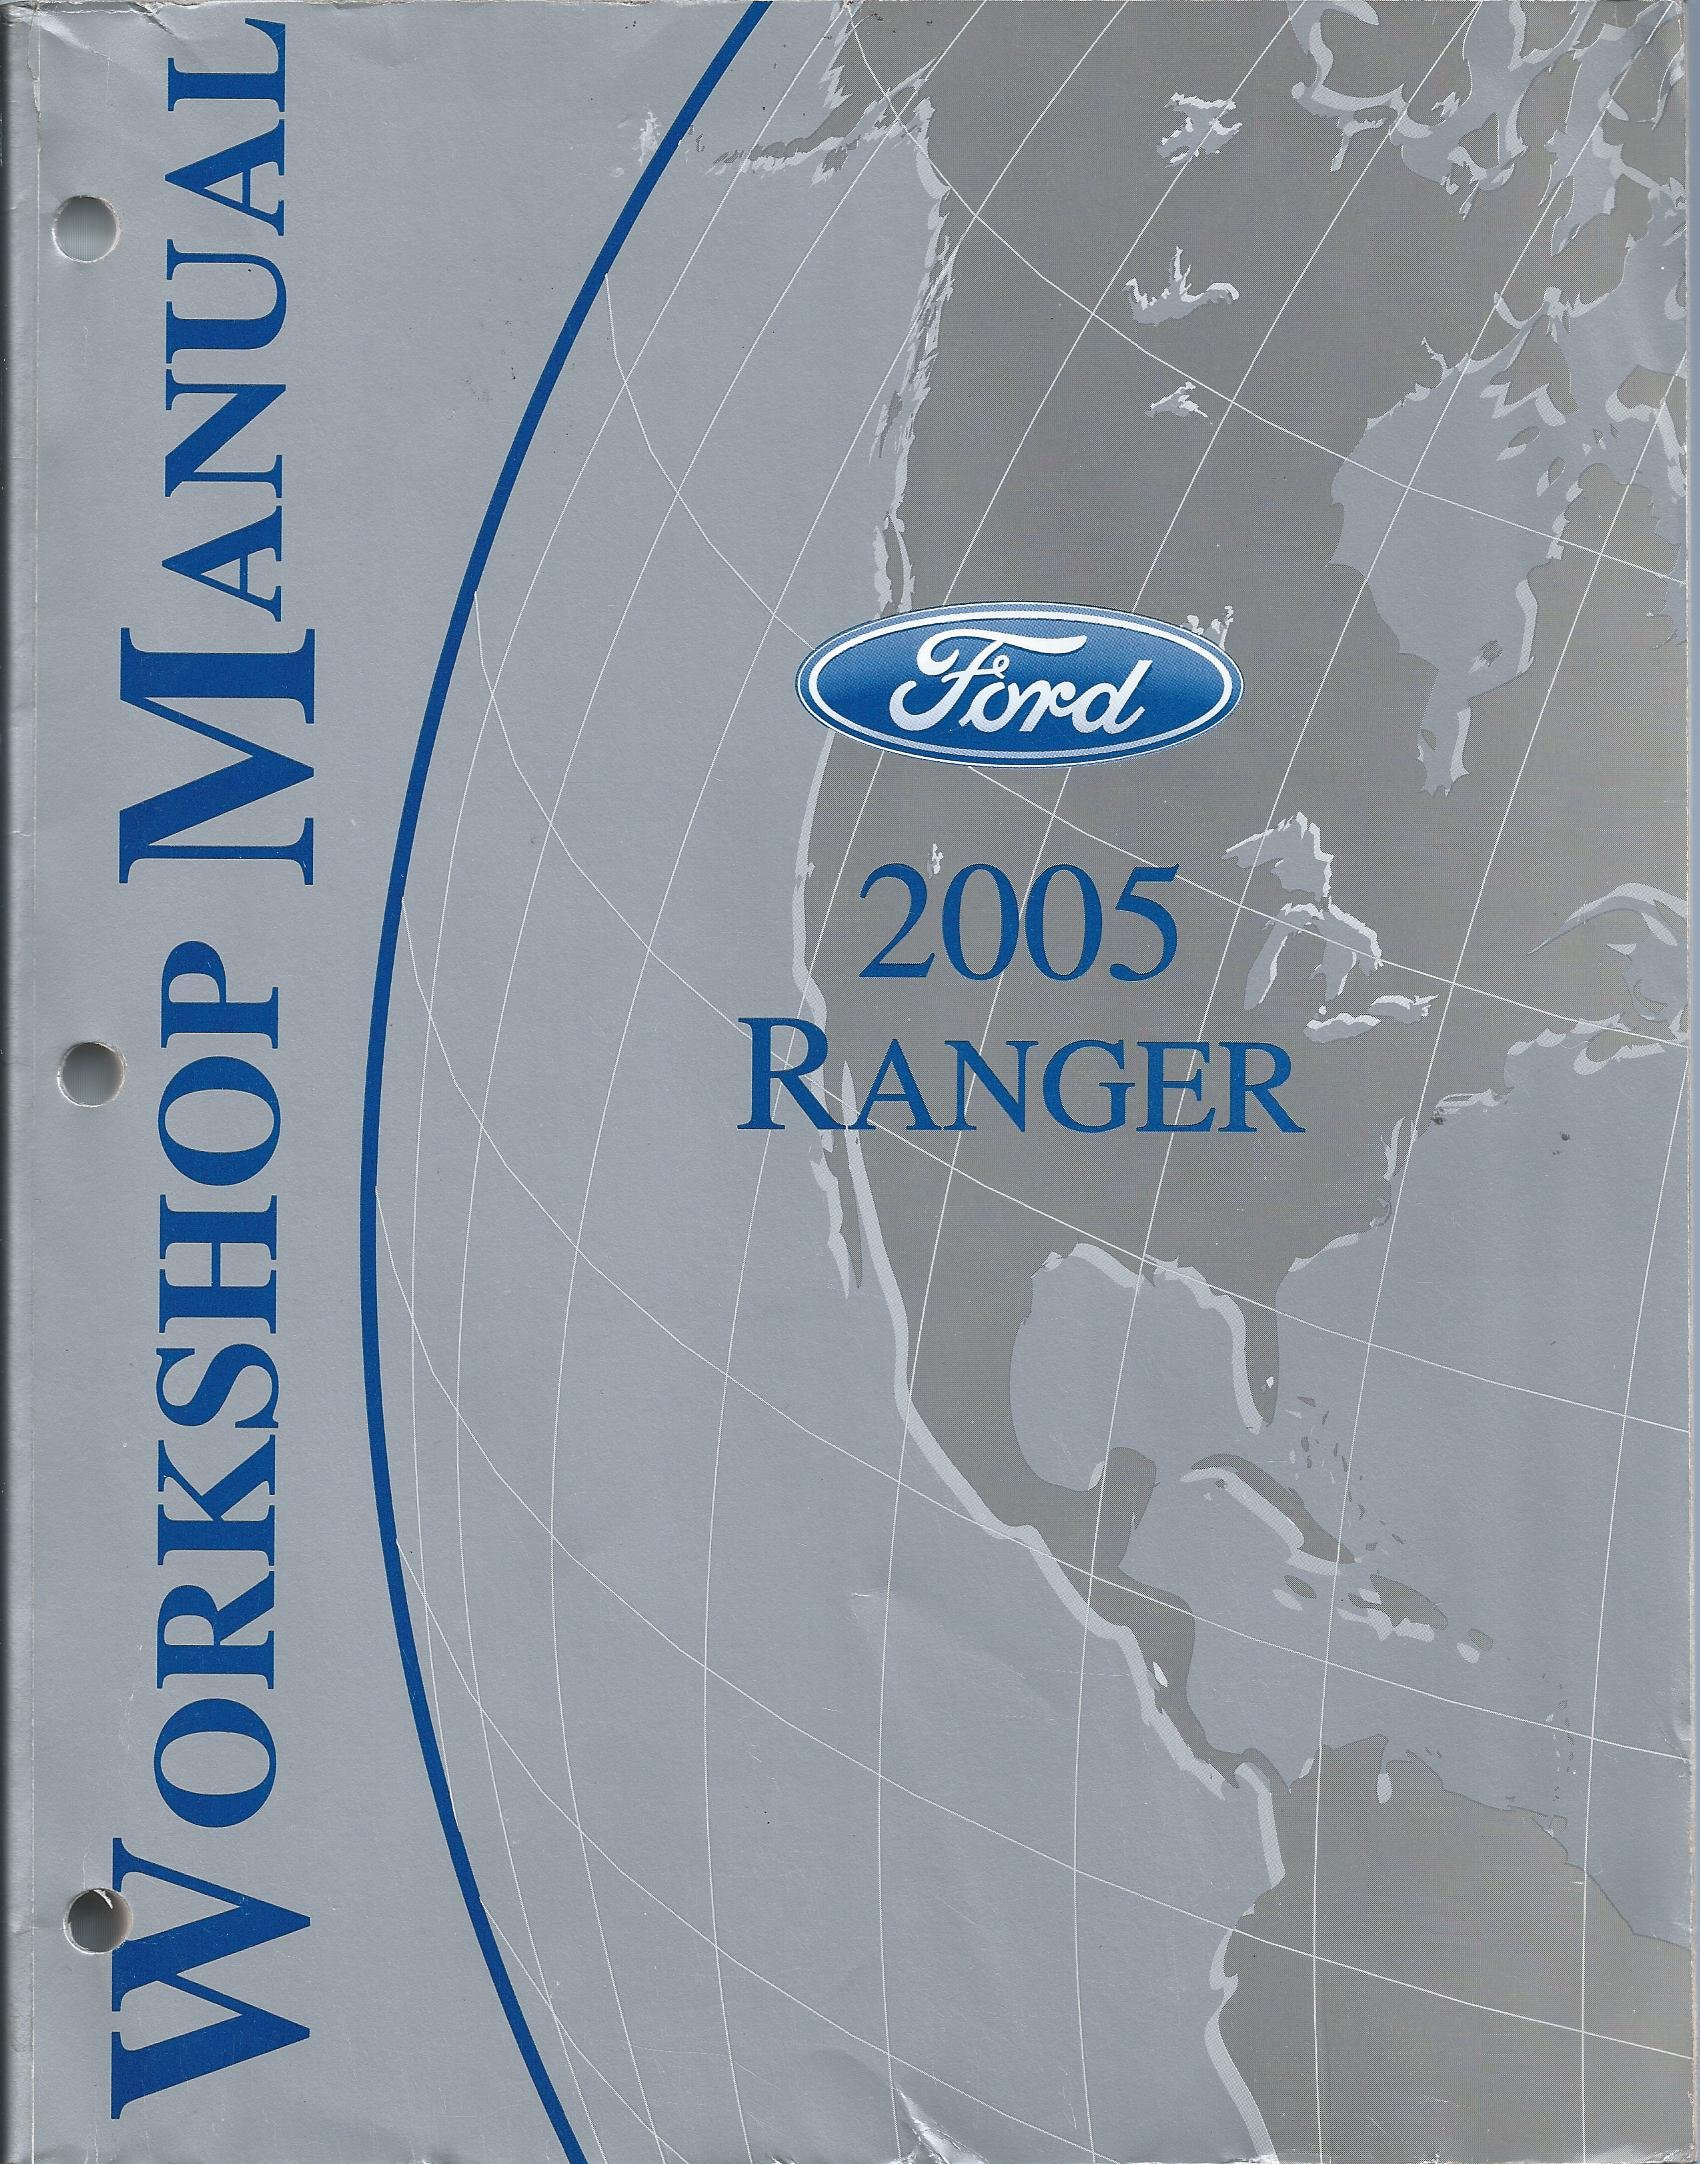 2005 Ford Ranger Workshop Manual (Complete Volume): Ford Motor Company:  Amazon.com: Books